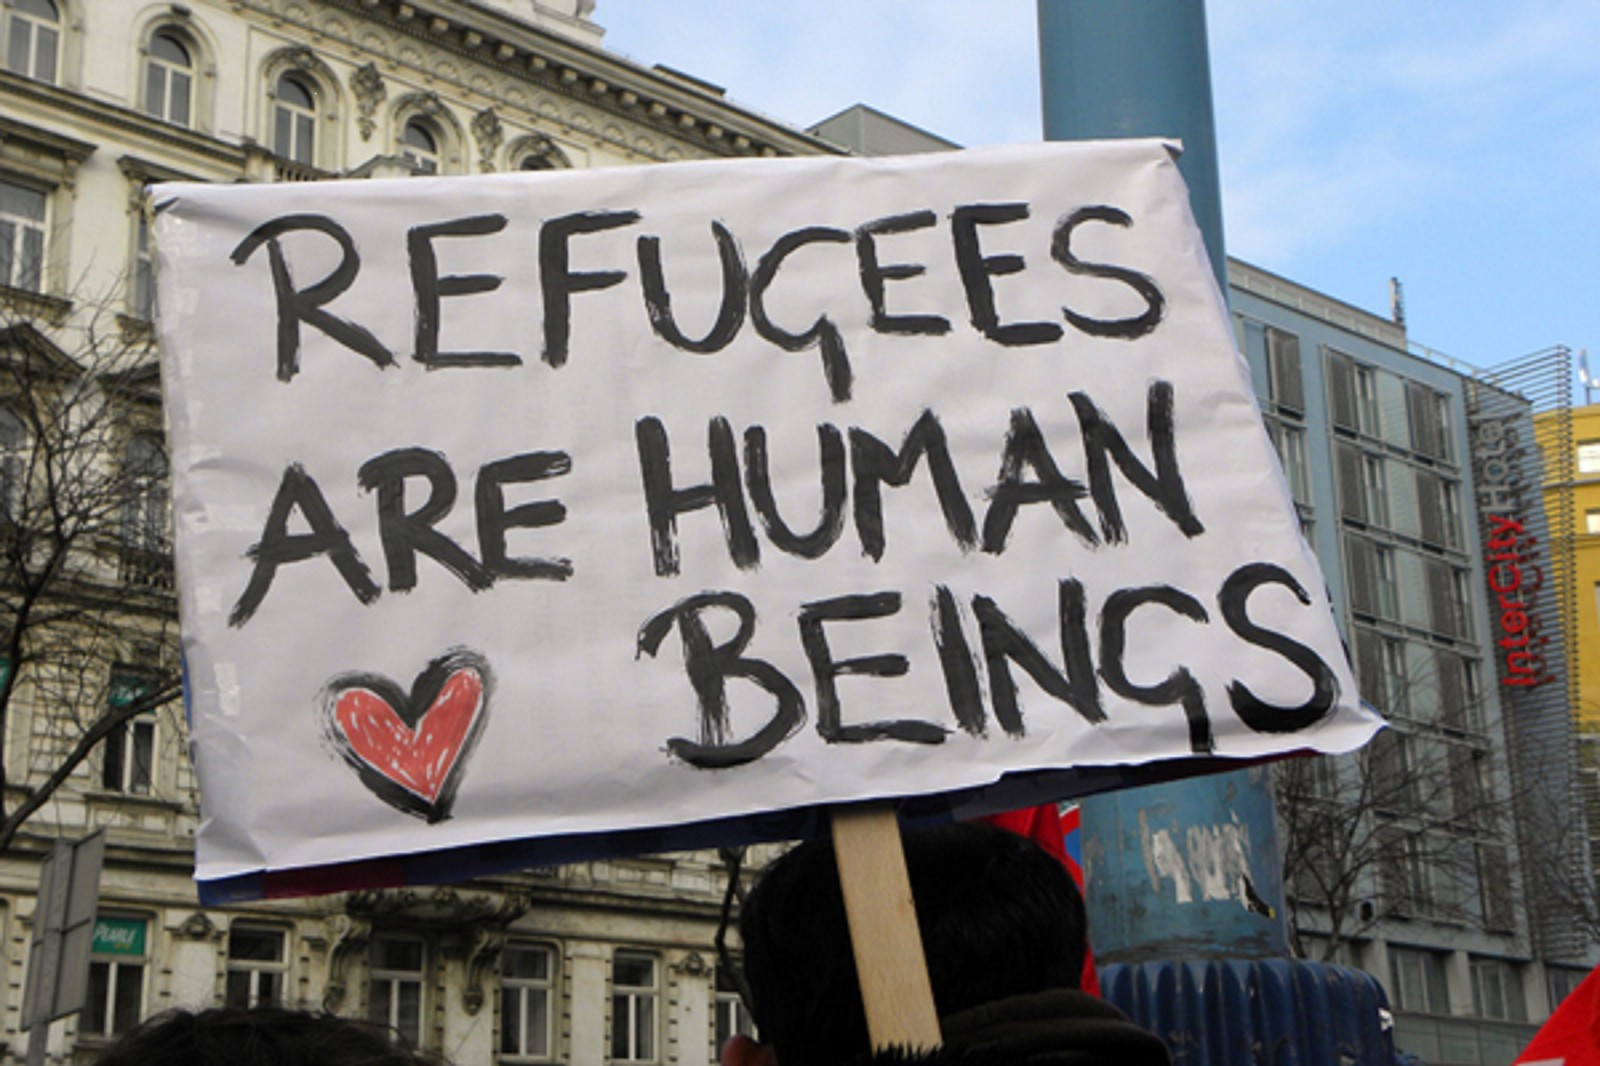 Sign: refugees are human beings